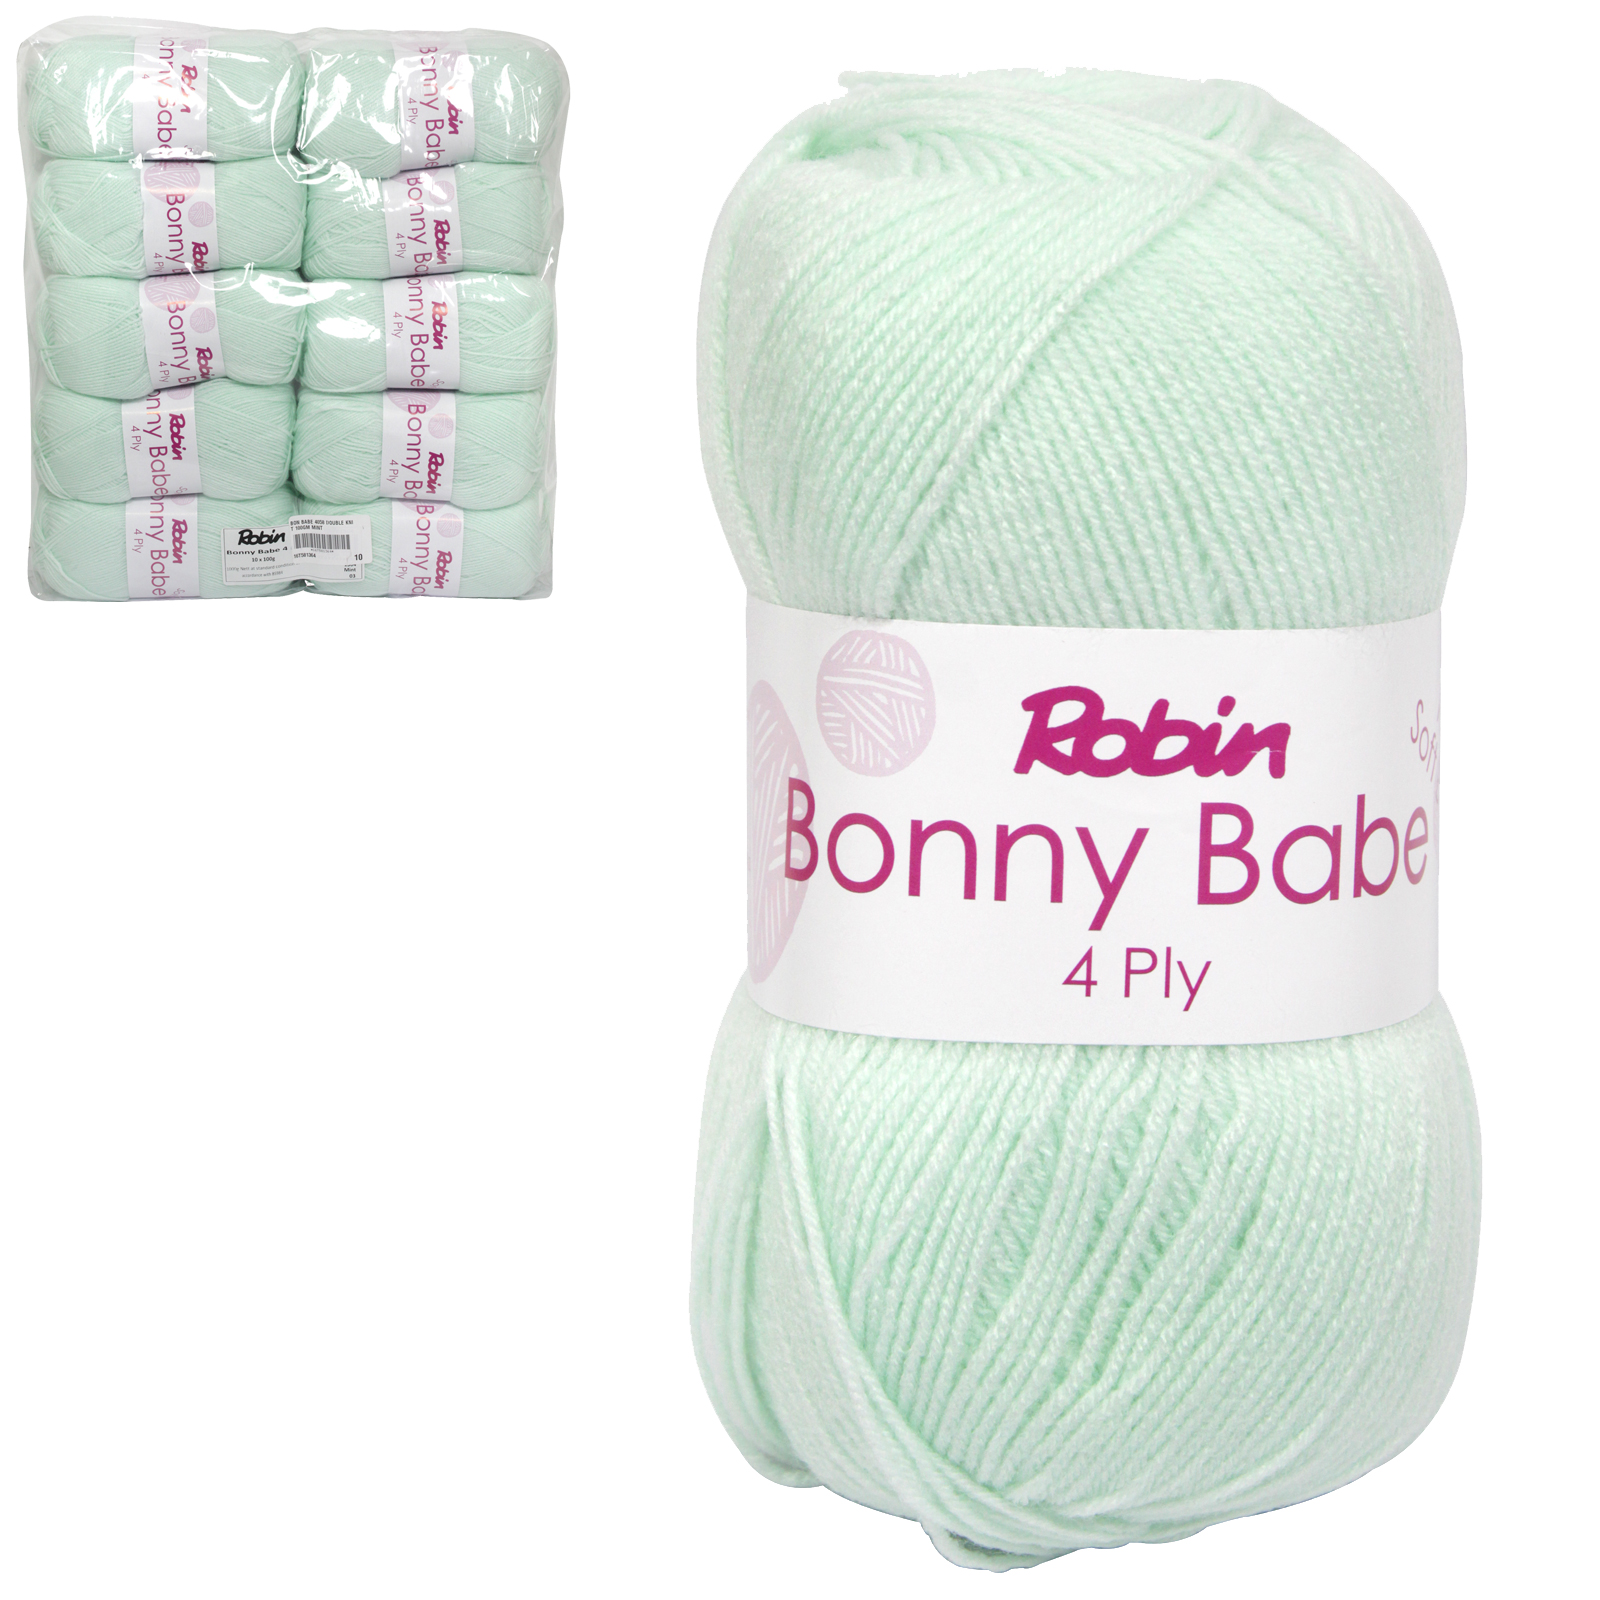 BONNY BABE 4058 DOUBLE KNIT WOOL WEIGHT 100GM LENGTH 300M MINT X10